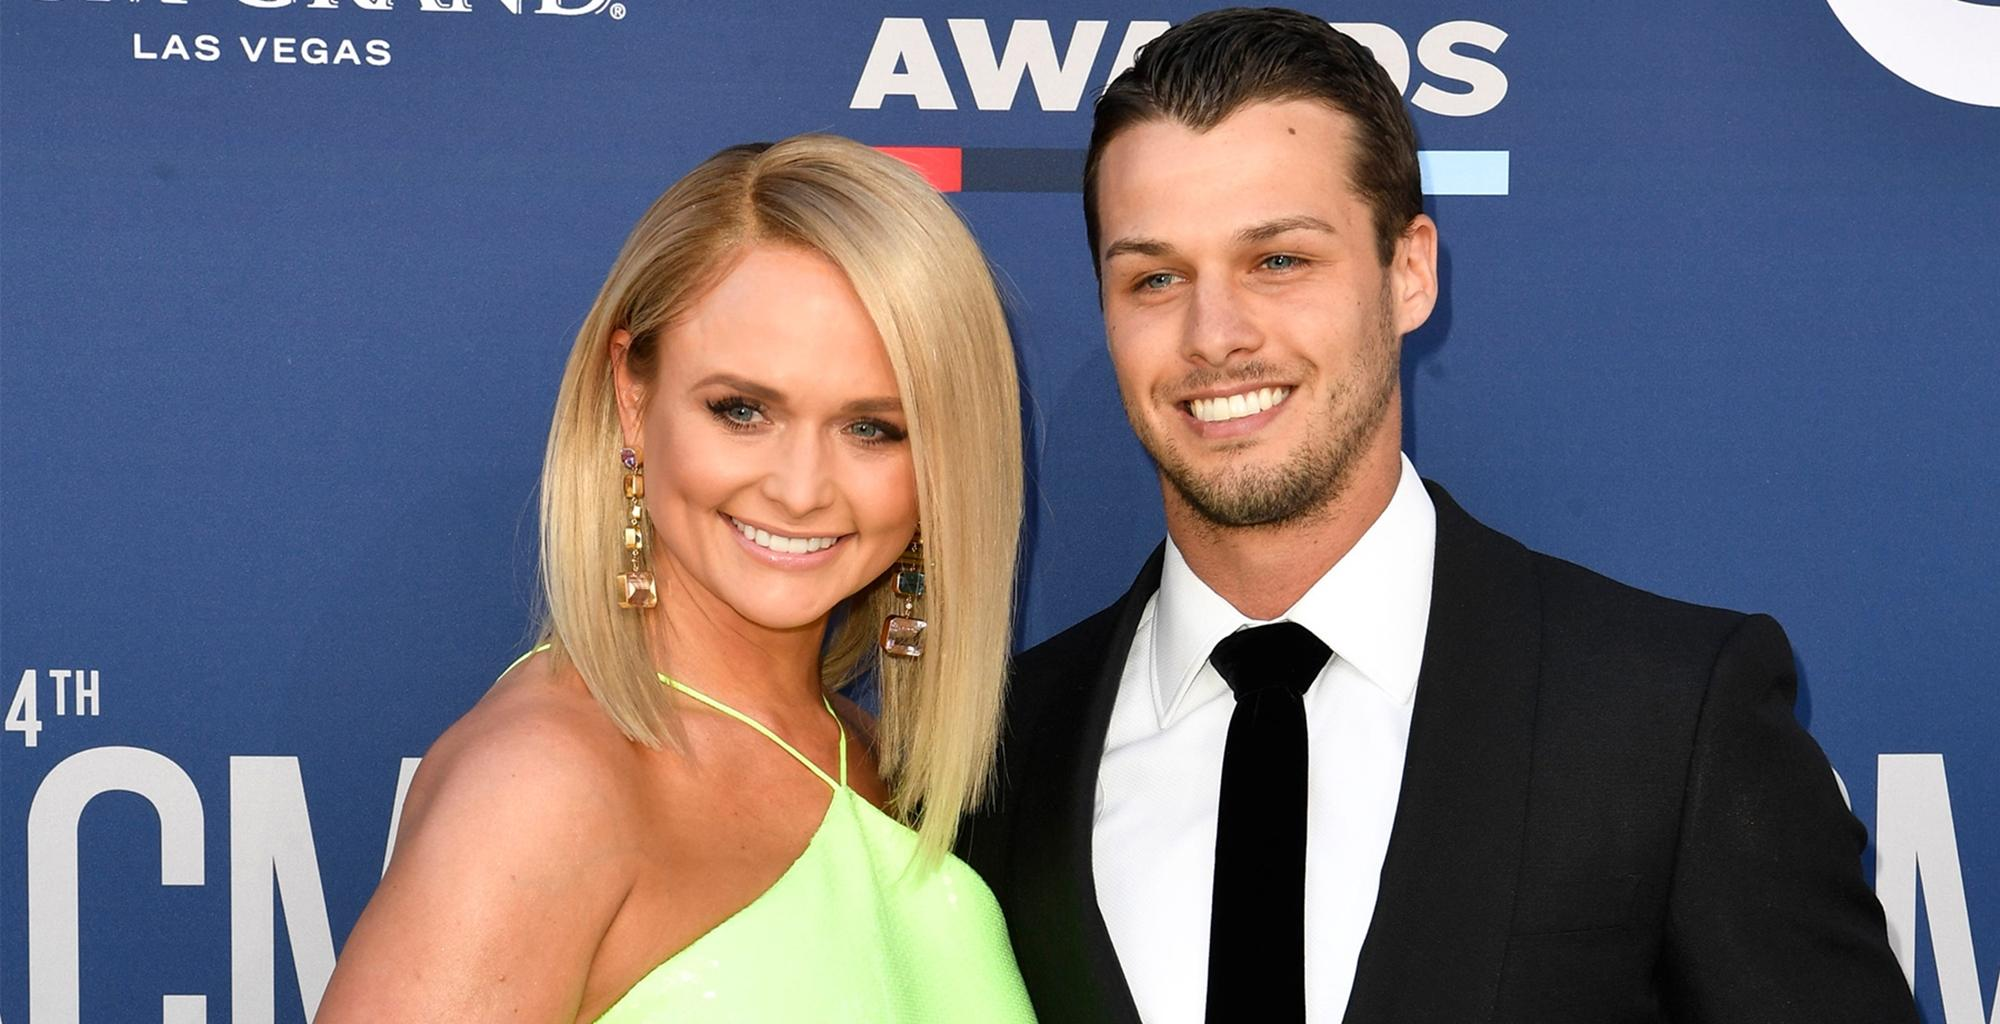 Miranda Lambert's Husband, Brendan McLoughlin, Is Not Shy About Showing Off His Impressive Physique In Push-Ups Video -- Fans Are Going Wild About The NYPD Officer